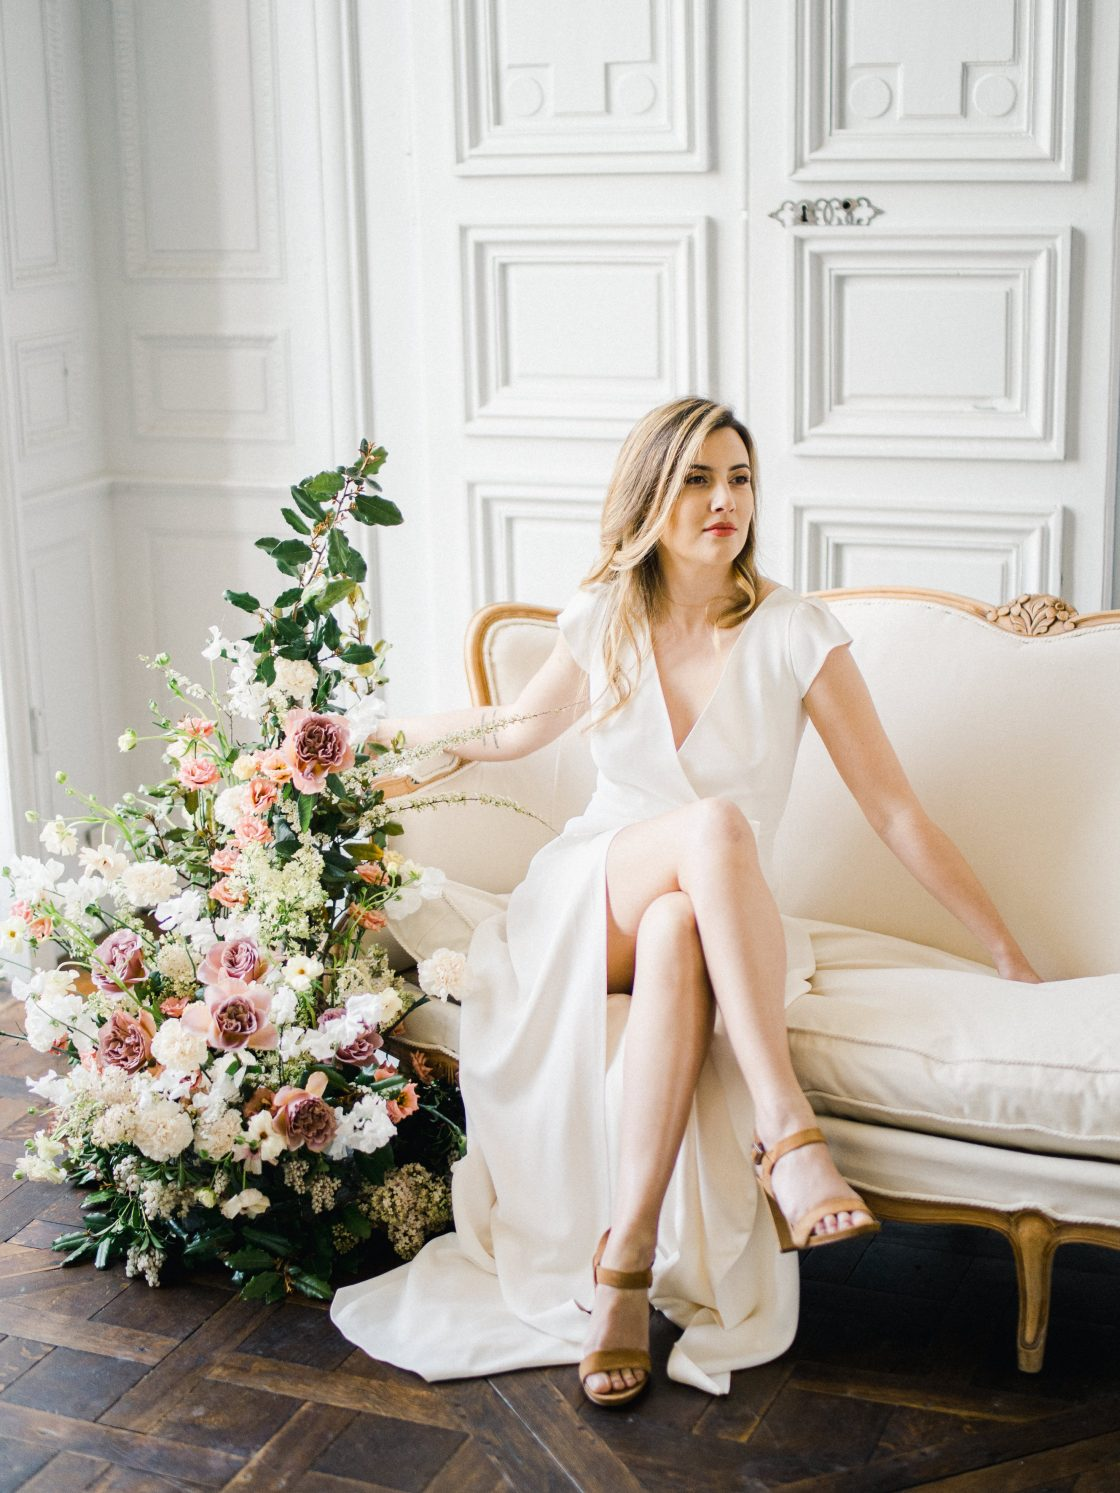 Elegant Whimsical French Chateau Wedding Inspiration Romain Vaucher 33